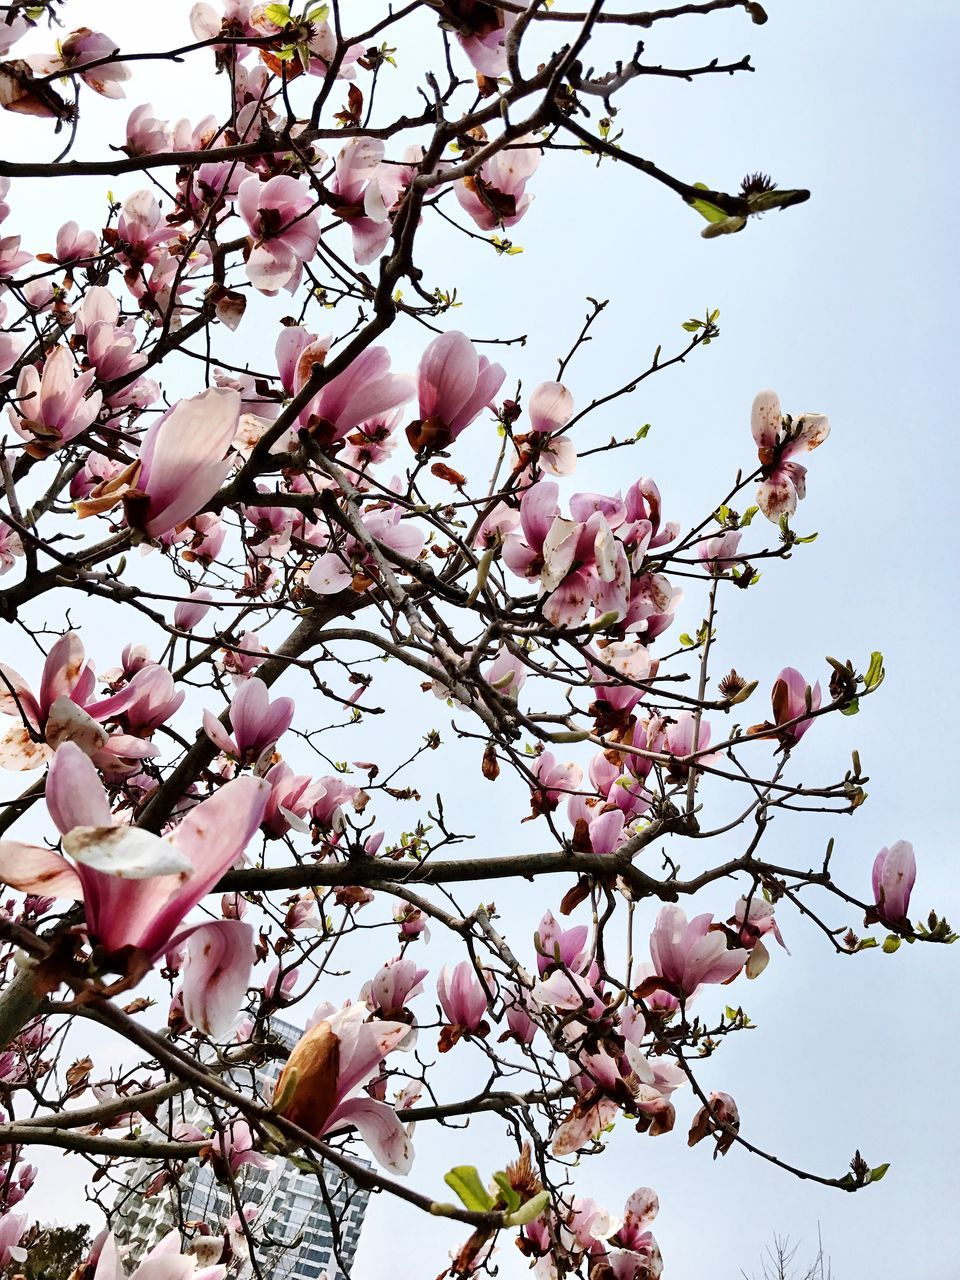 flower, pink color, beauty in nature, tree, fragility, branch, blossom, nature, magnolia, springtime, growth, freshness, petal, low angle view, cherry tree, botany, day, no people, apple blossom, outdoors, plum blossom, twig, blooming, close-up, flower head, clear sky, sky